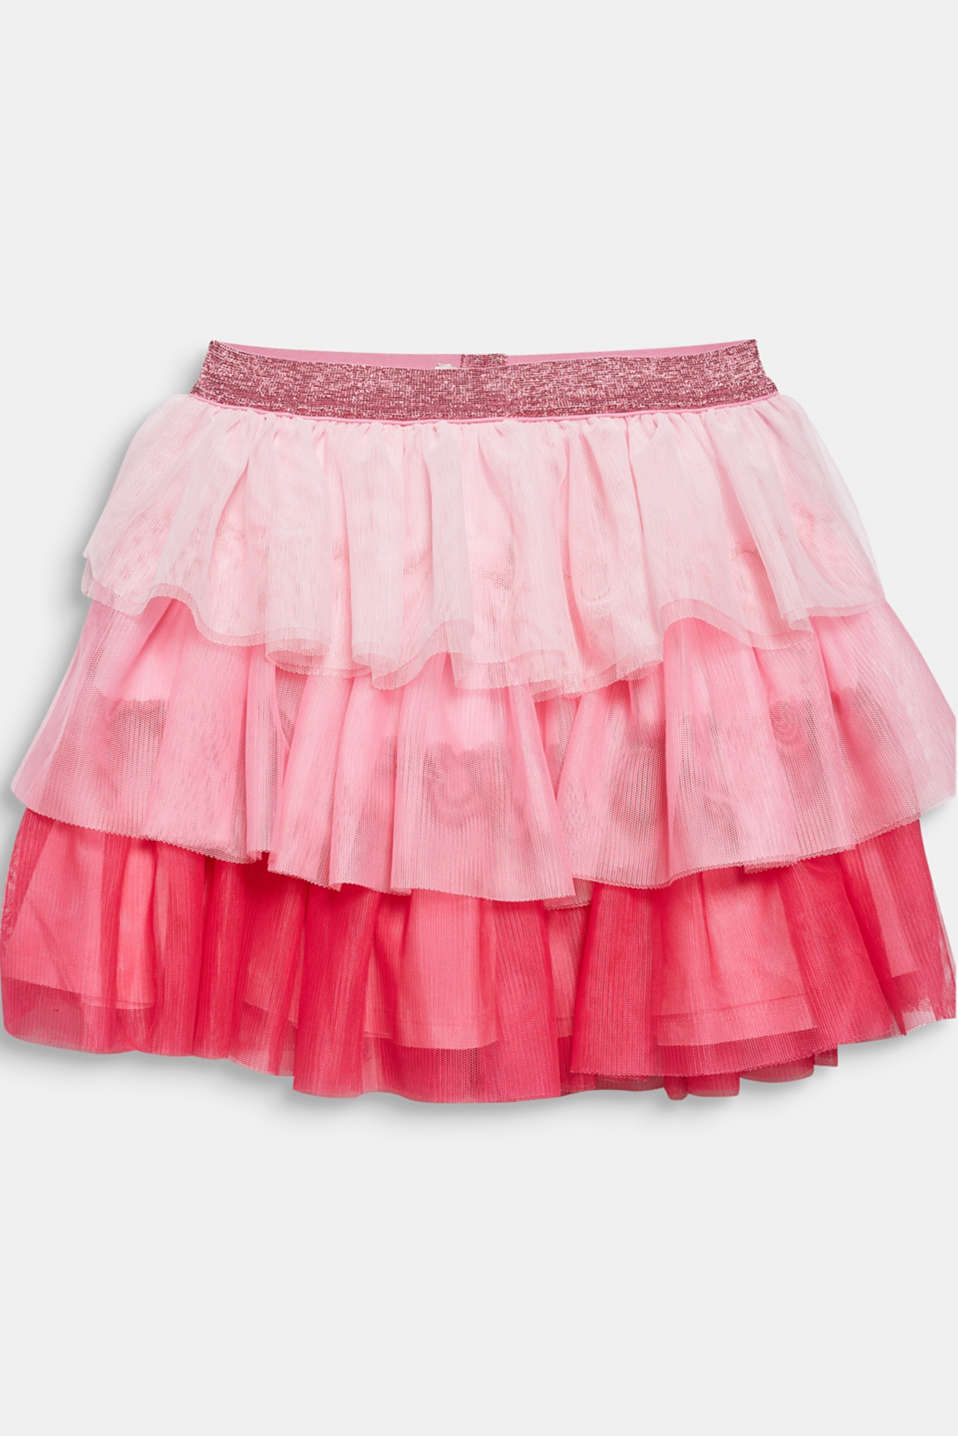 Layered skirt made of tulle with a glitter waistband, CANDY PINK, detail image number 1